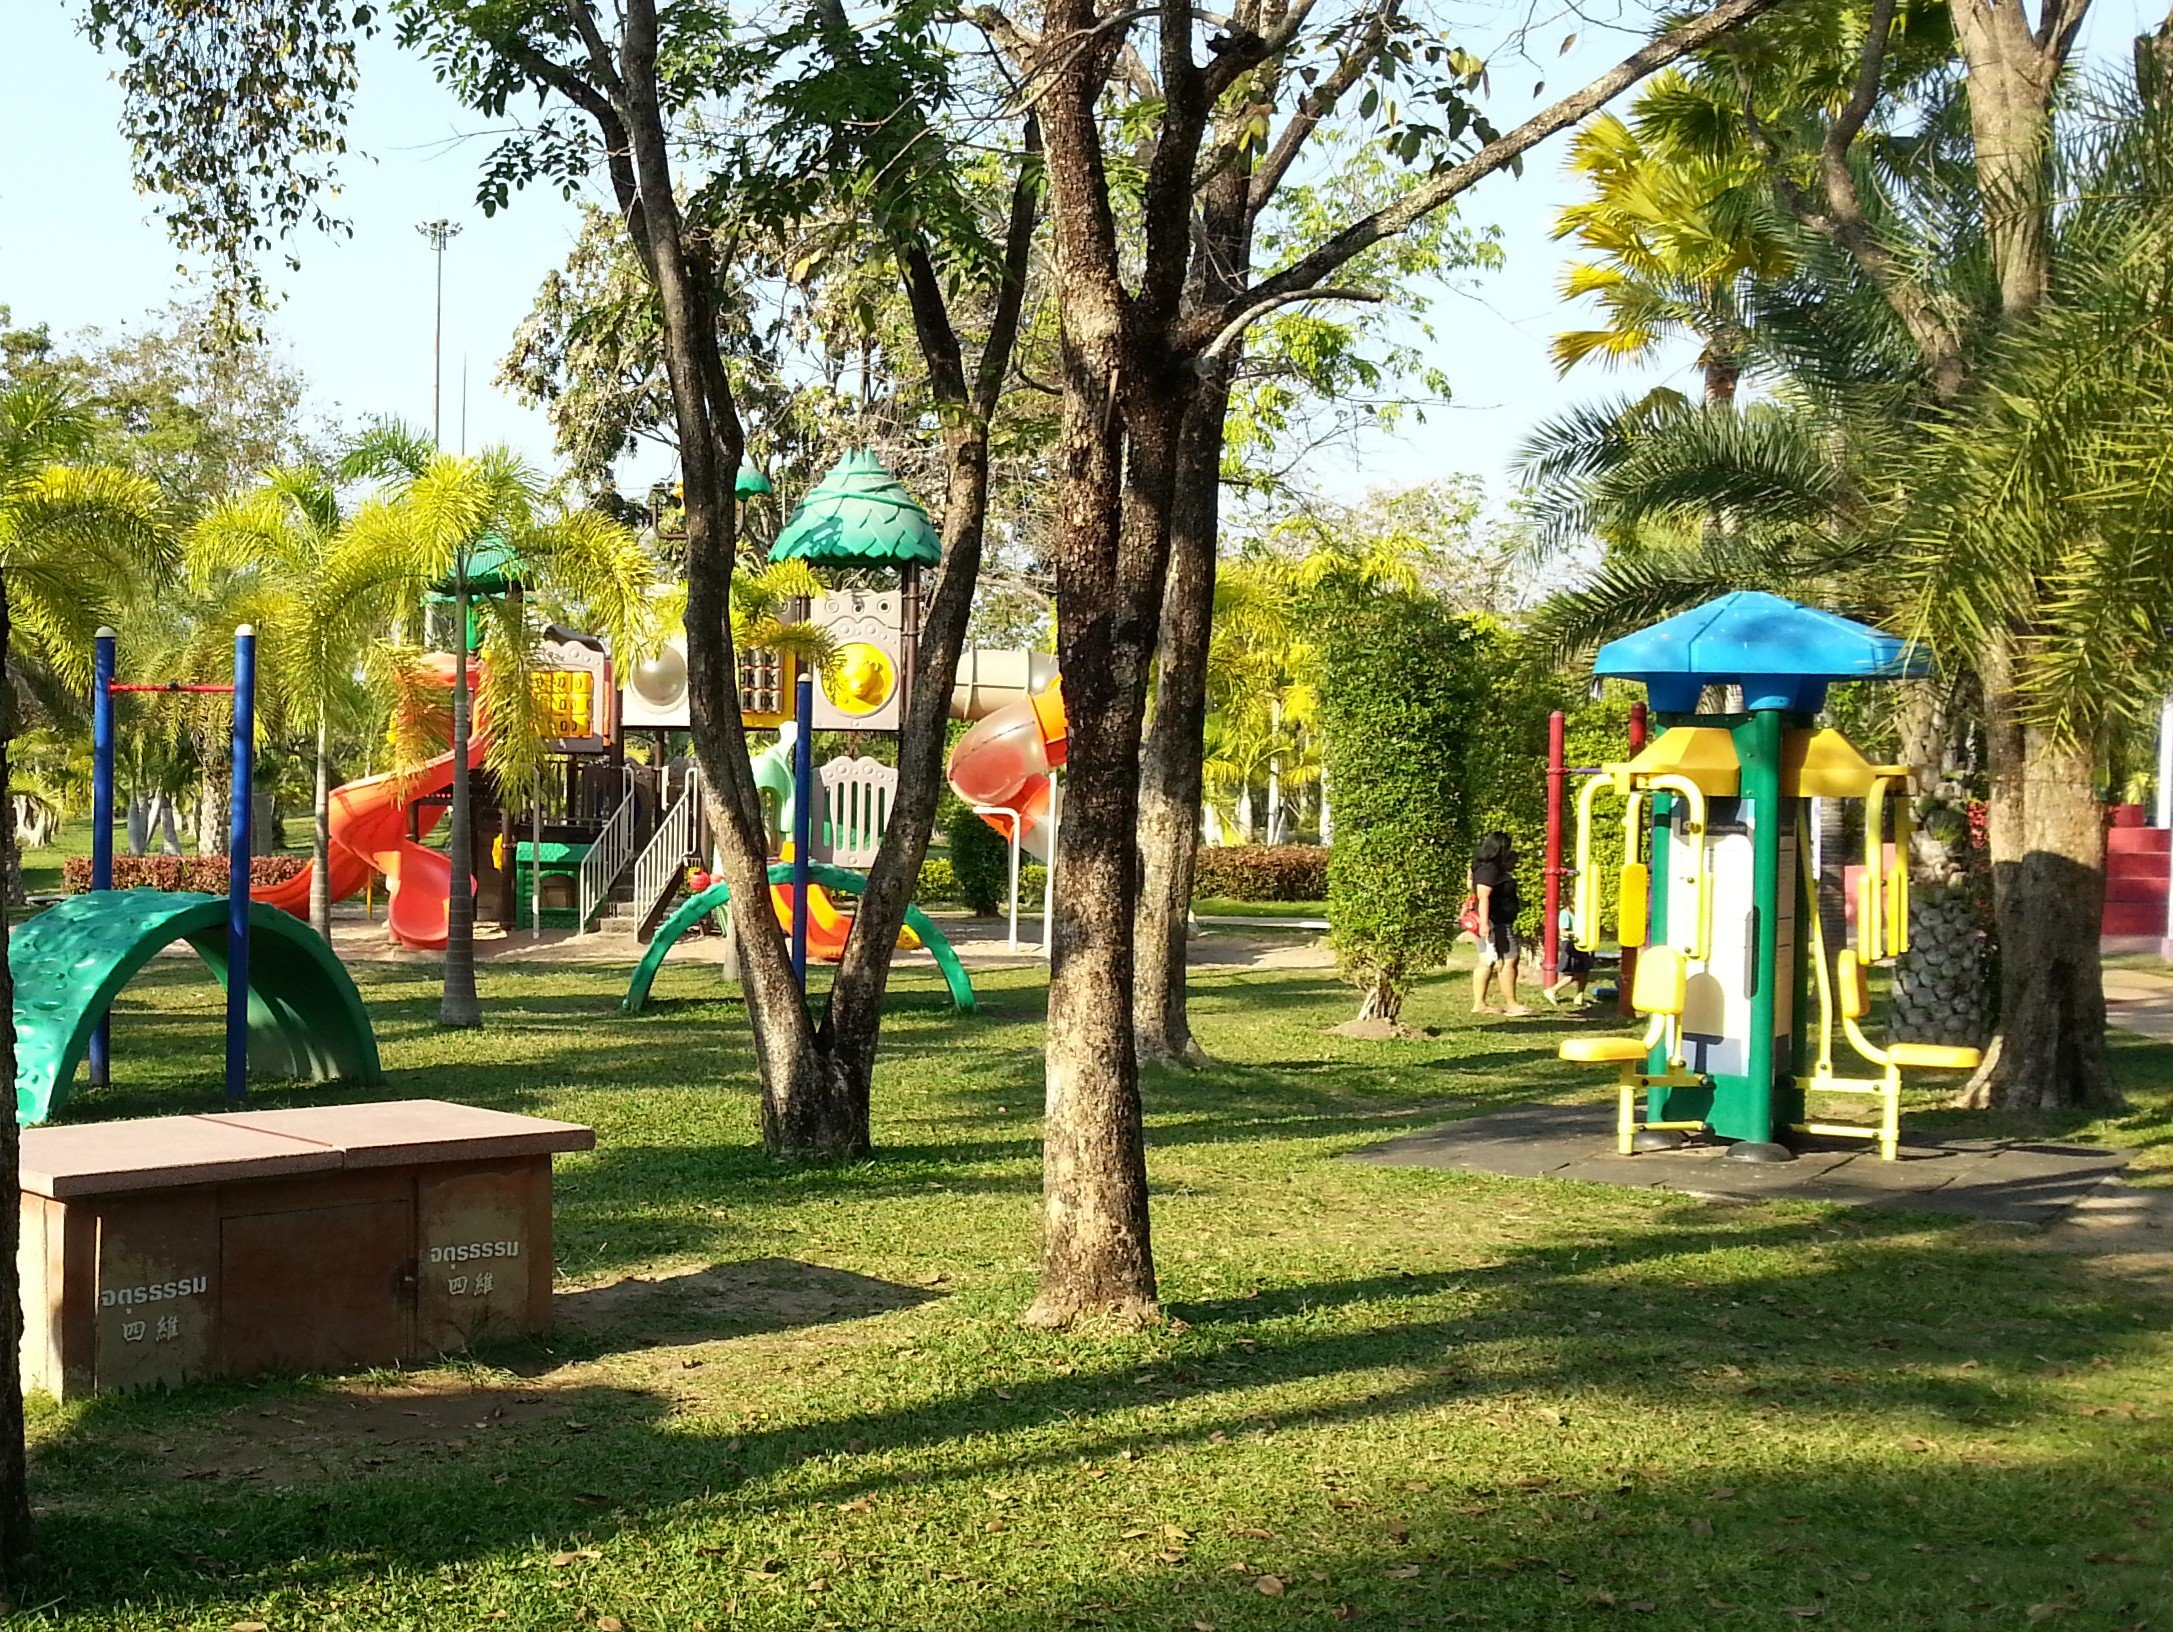 Children's play area at Nong Prajak Park